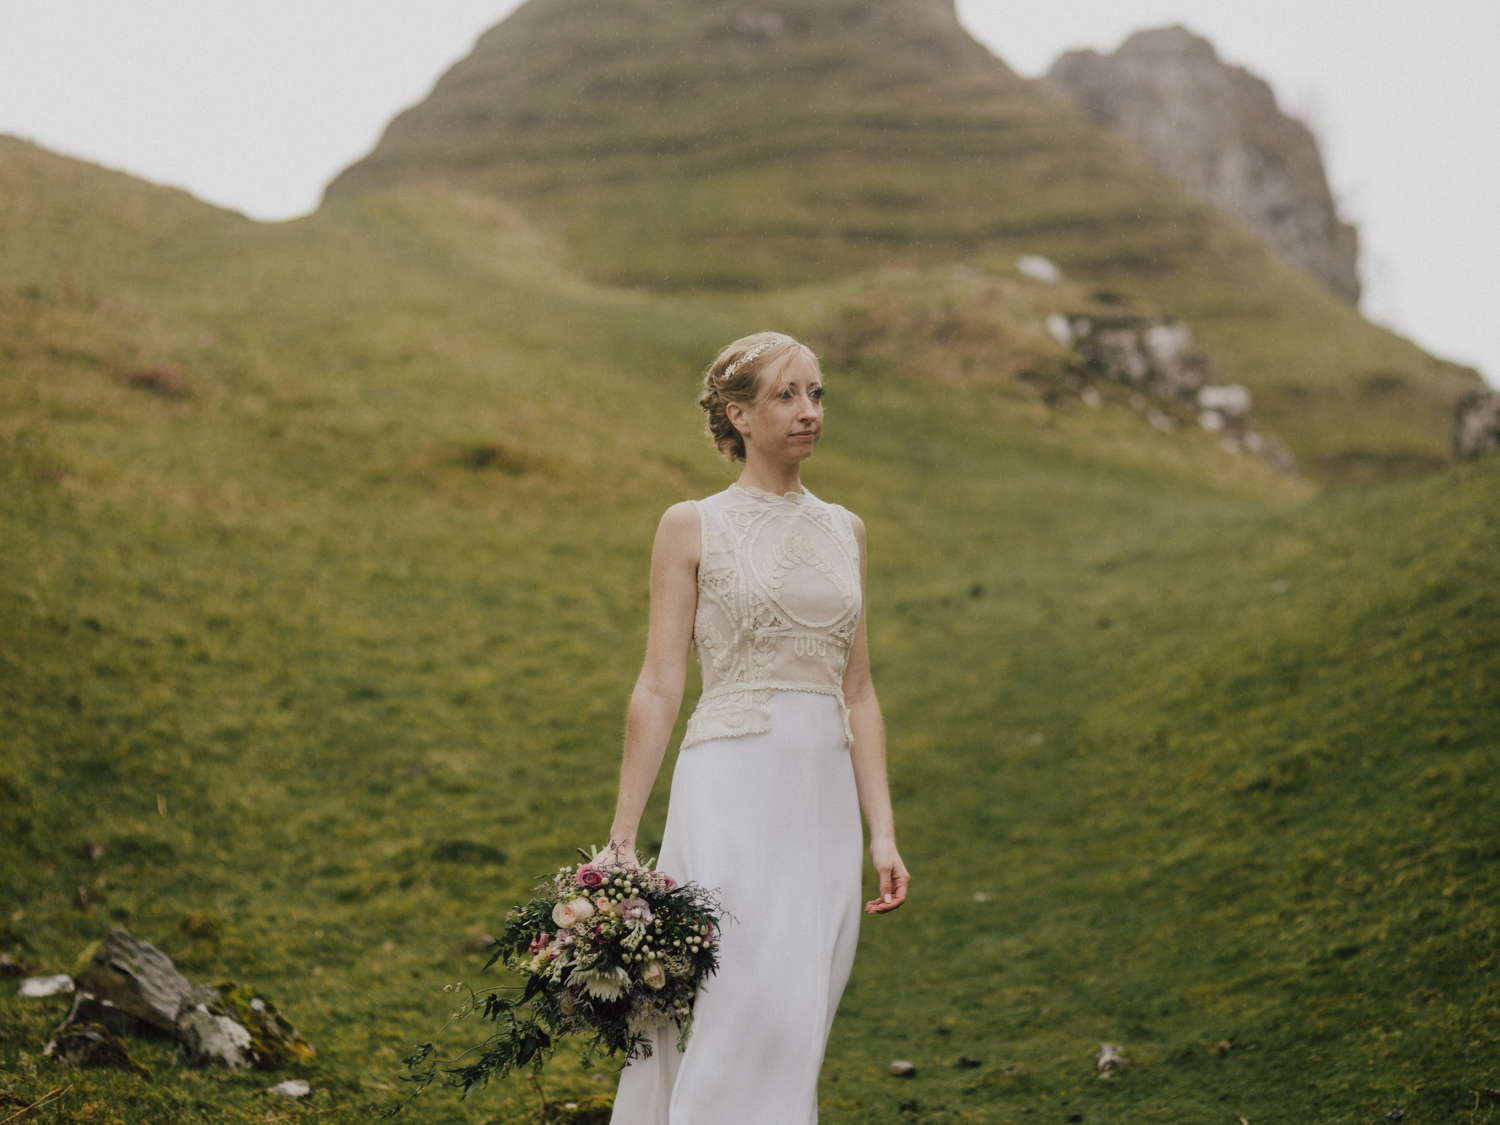 capyture-wedding-photographer-destination-elopement-isle-skye-scotland-337